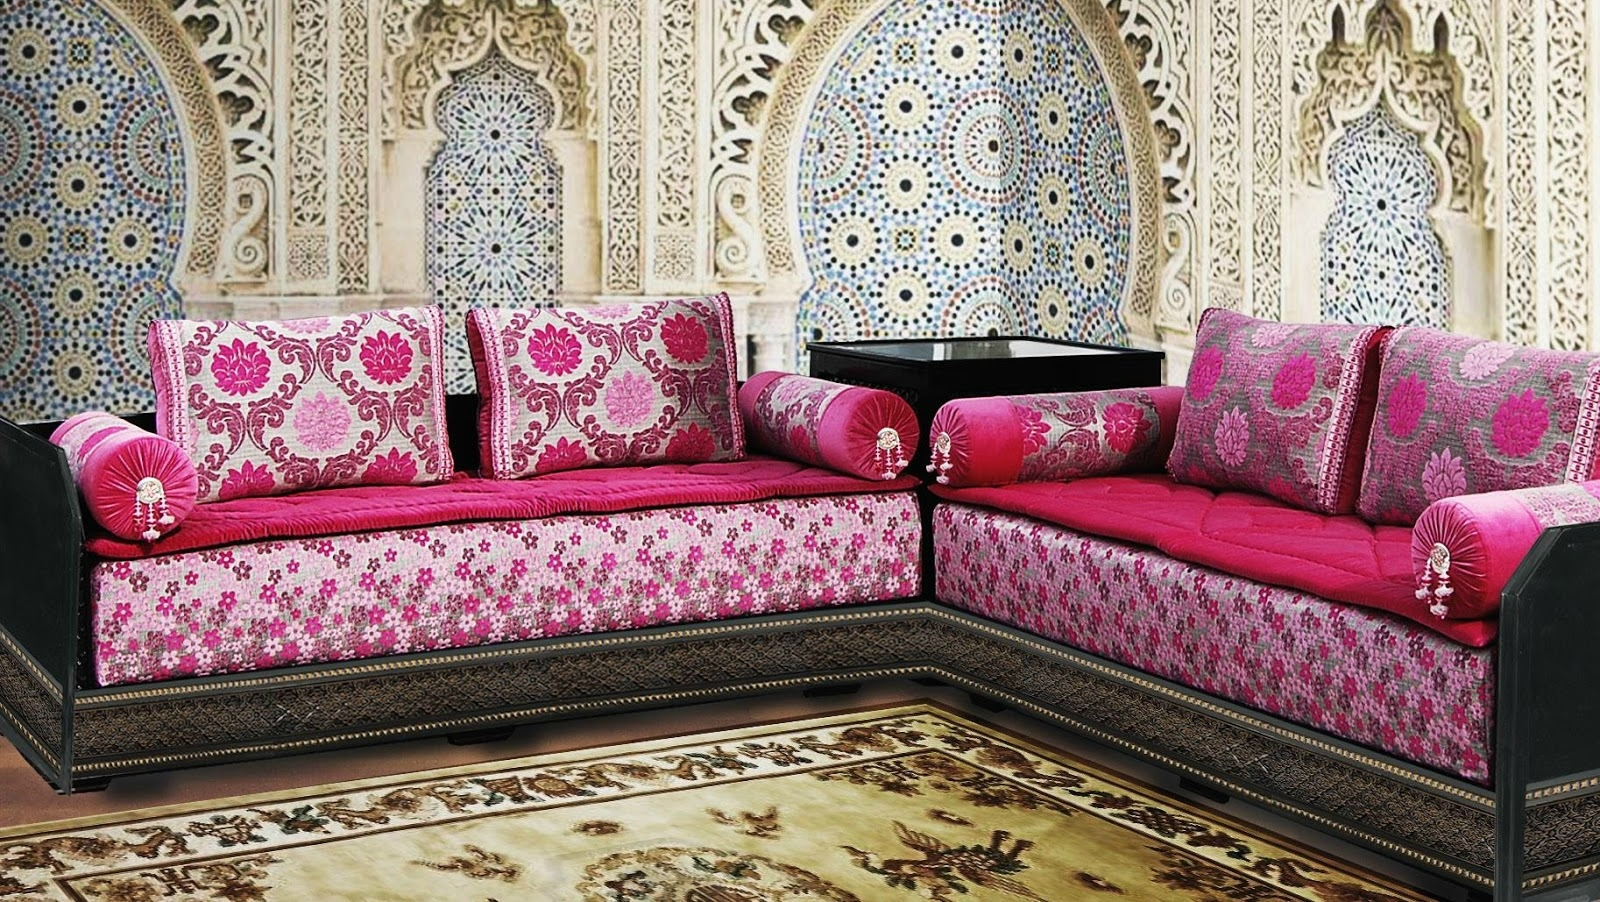 Salon De La Décoration Paris 2017 Salon Marocain Design 2017 Richbond Decoration Salon Maroc